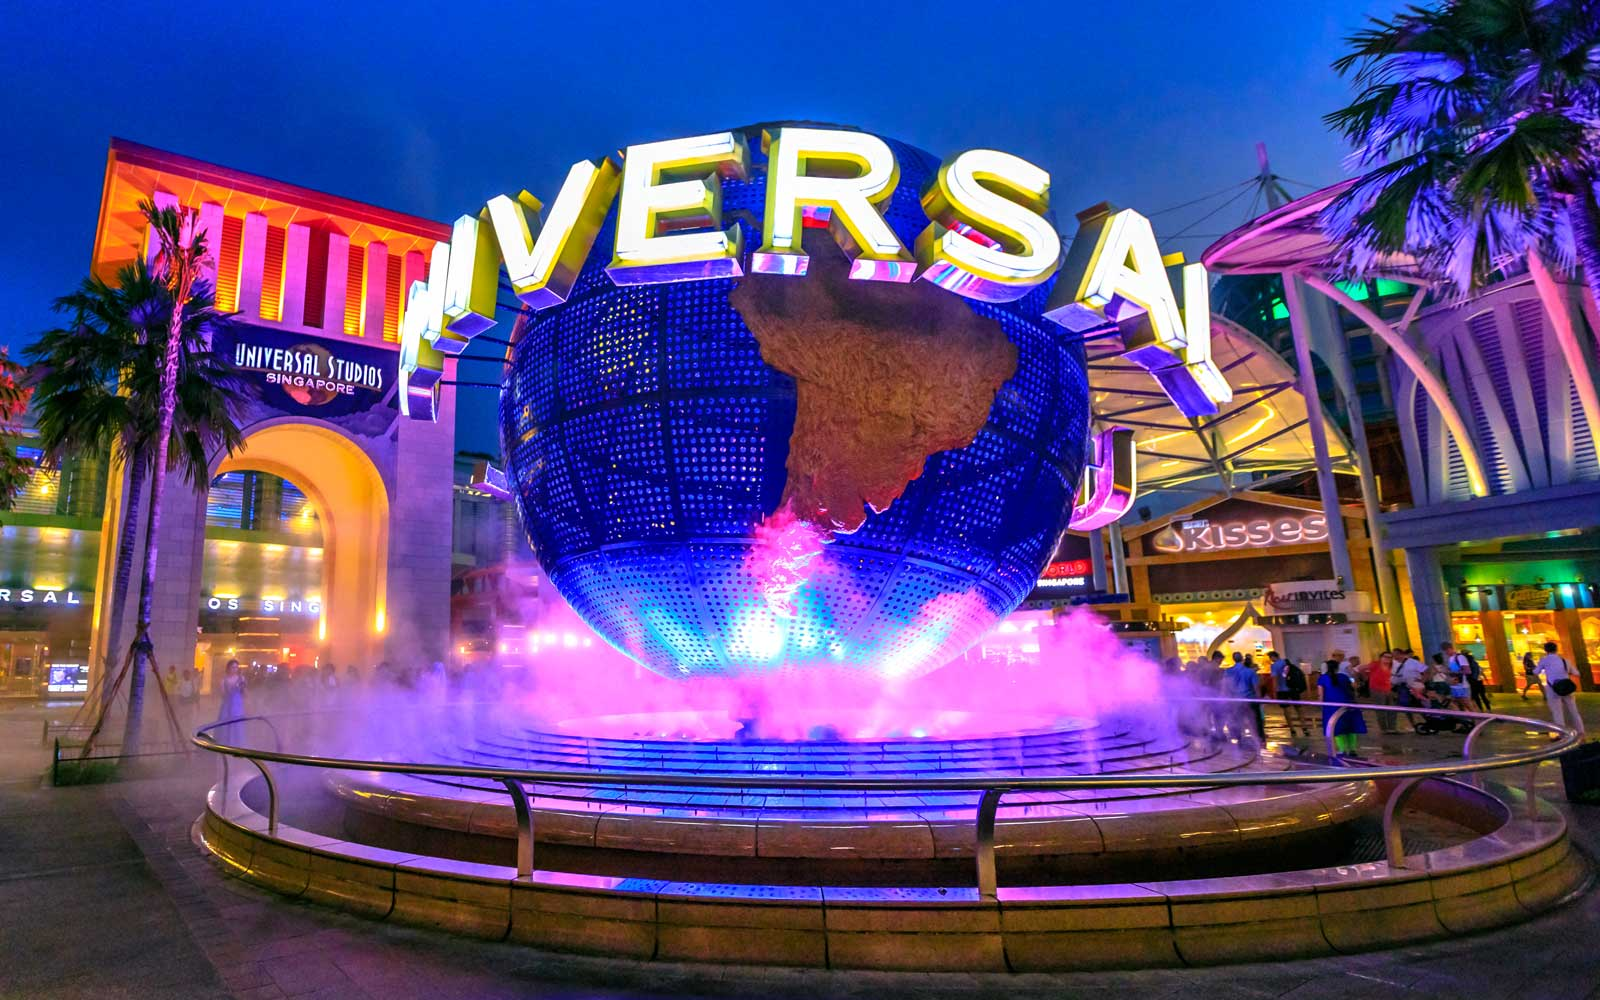 The Major Money-saving Hack You Need to Know If You're Going to Universal Orlando